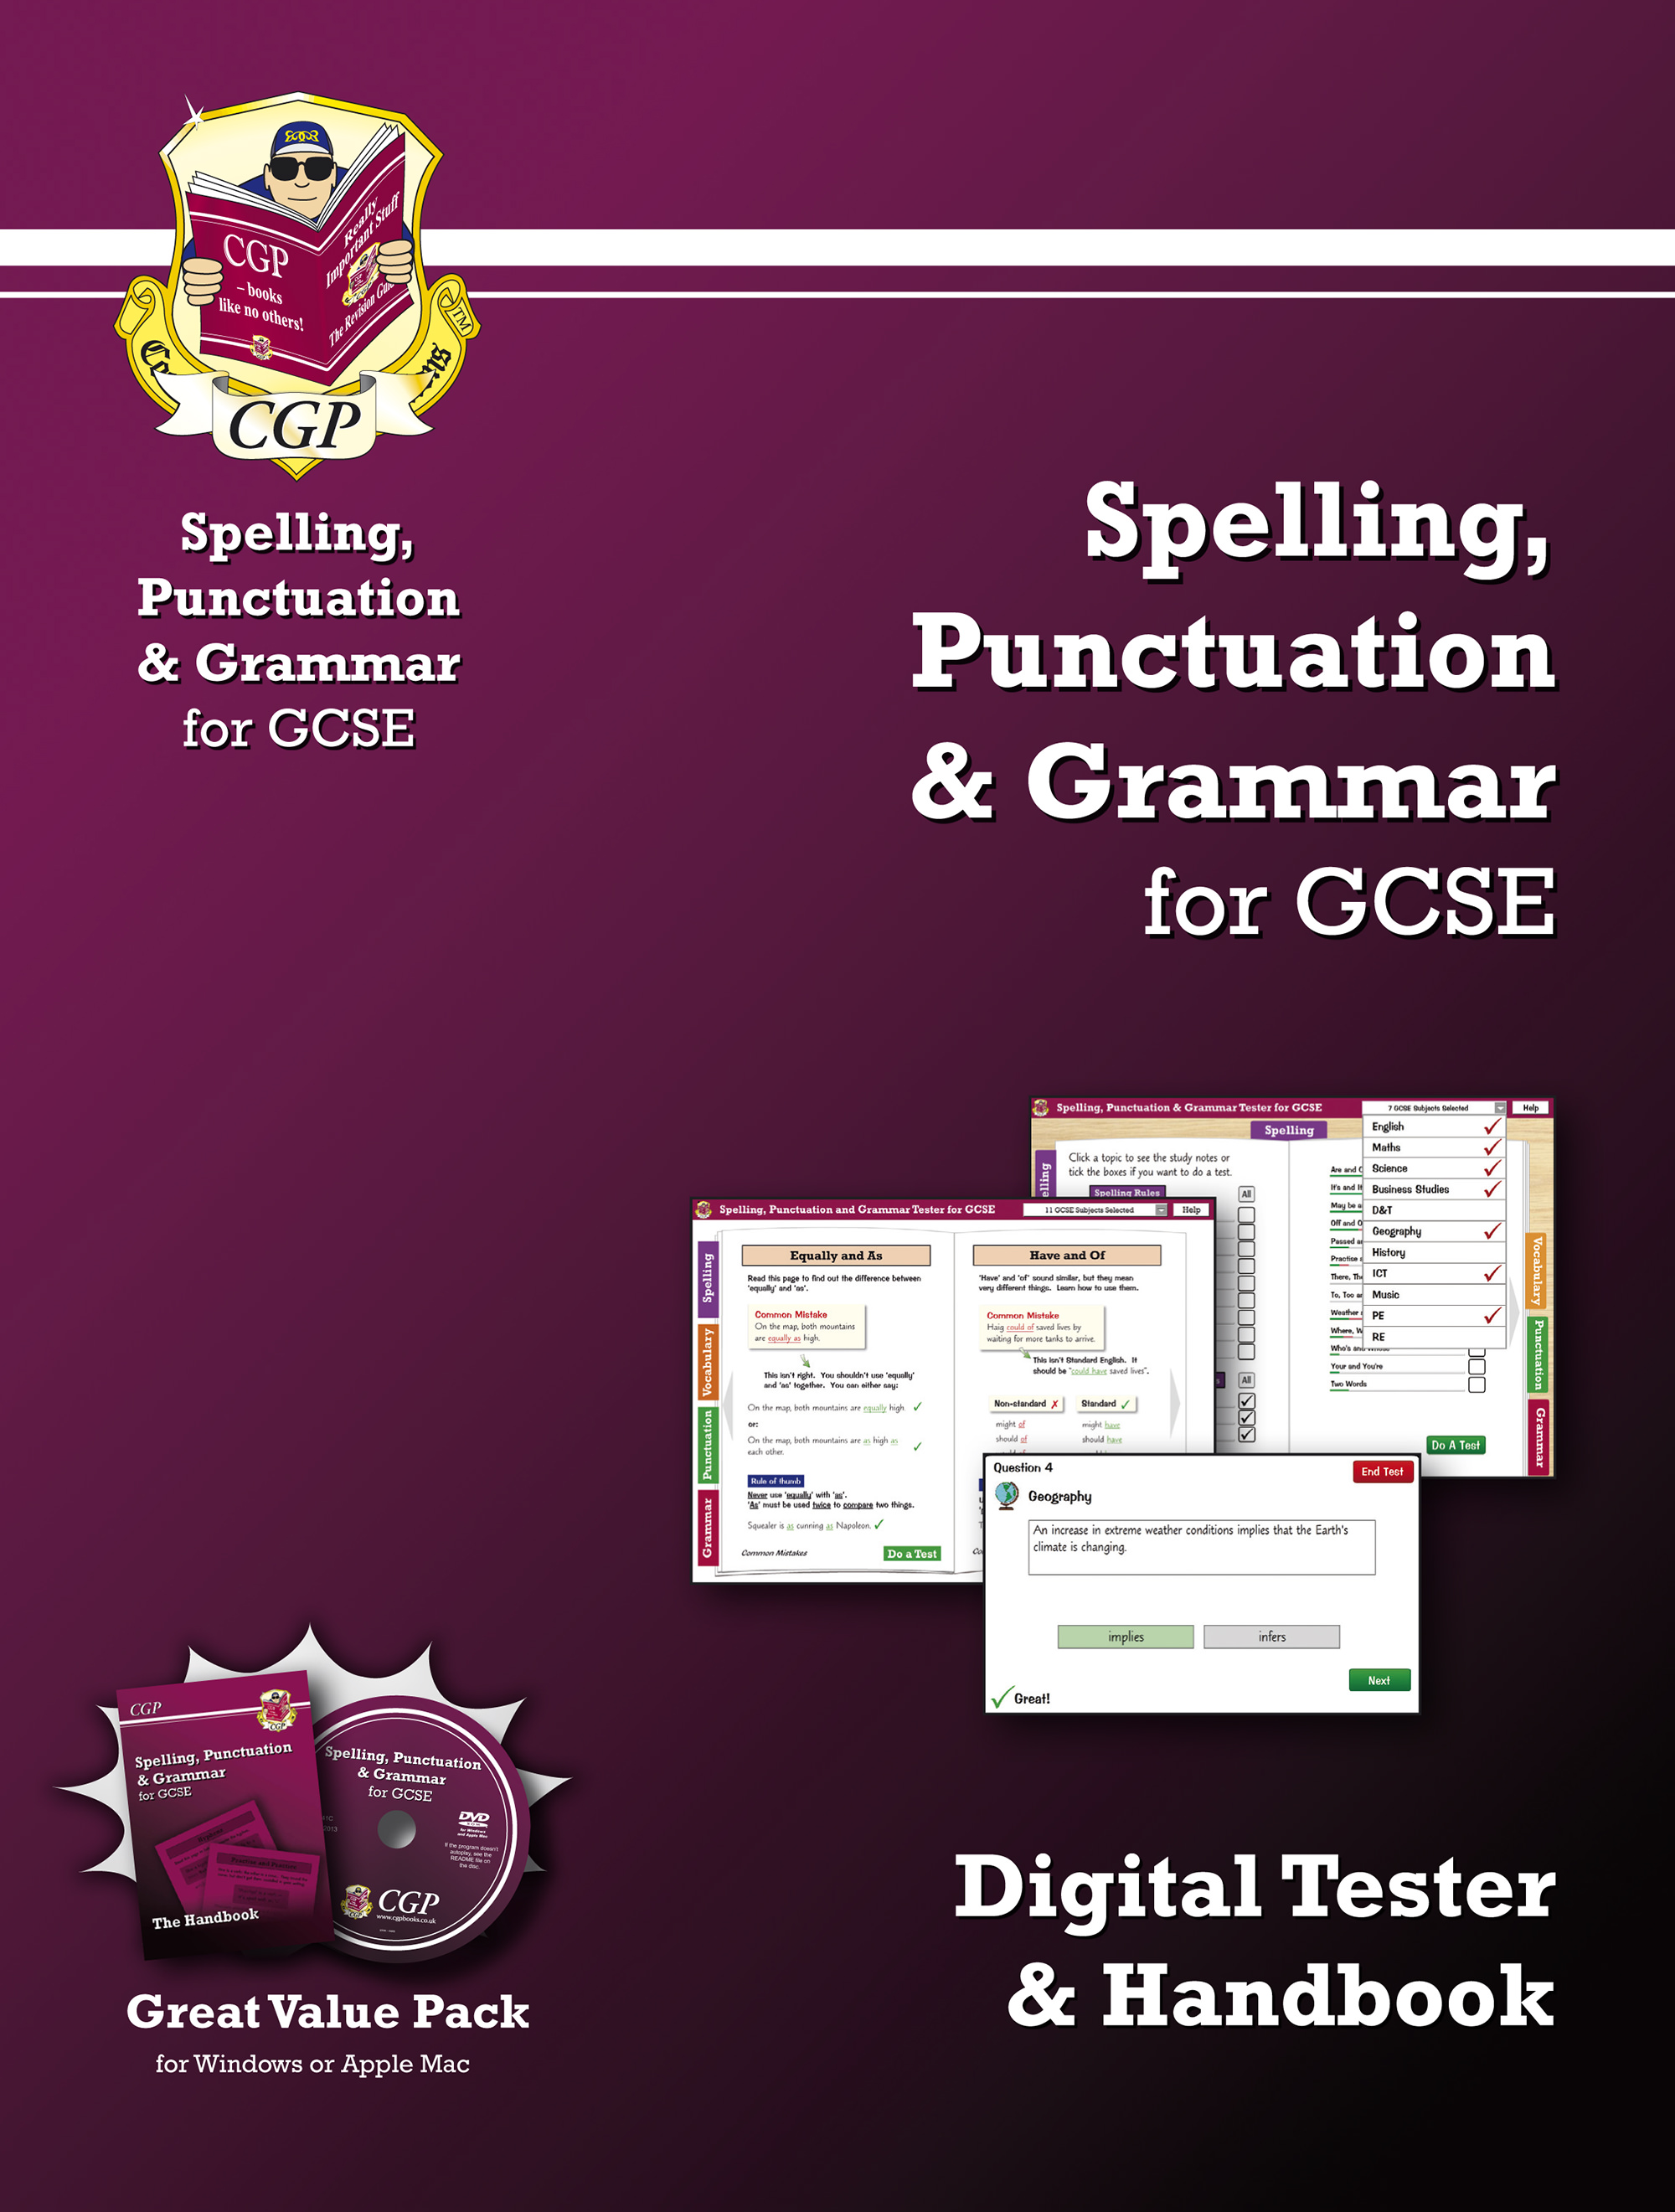 YETI41B - Spelling, Punctuation & Grammar for GCSE - Digital Tester and Handbook